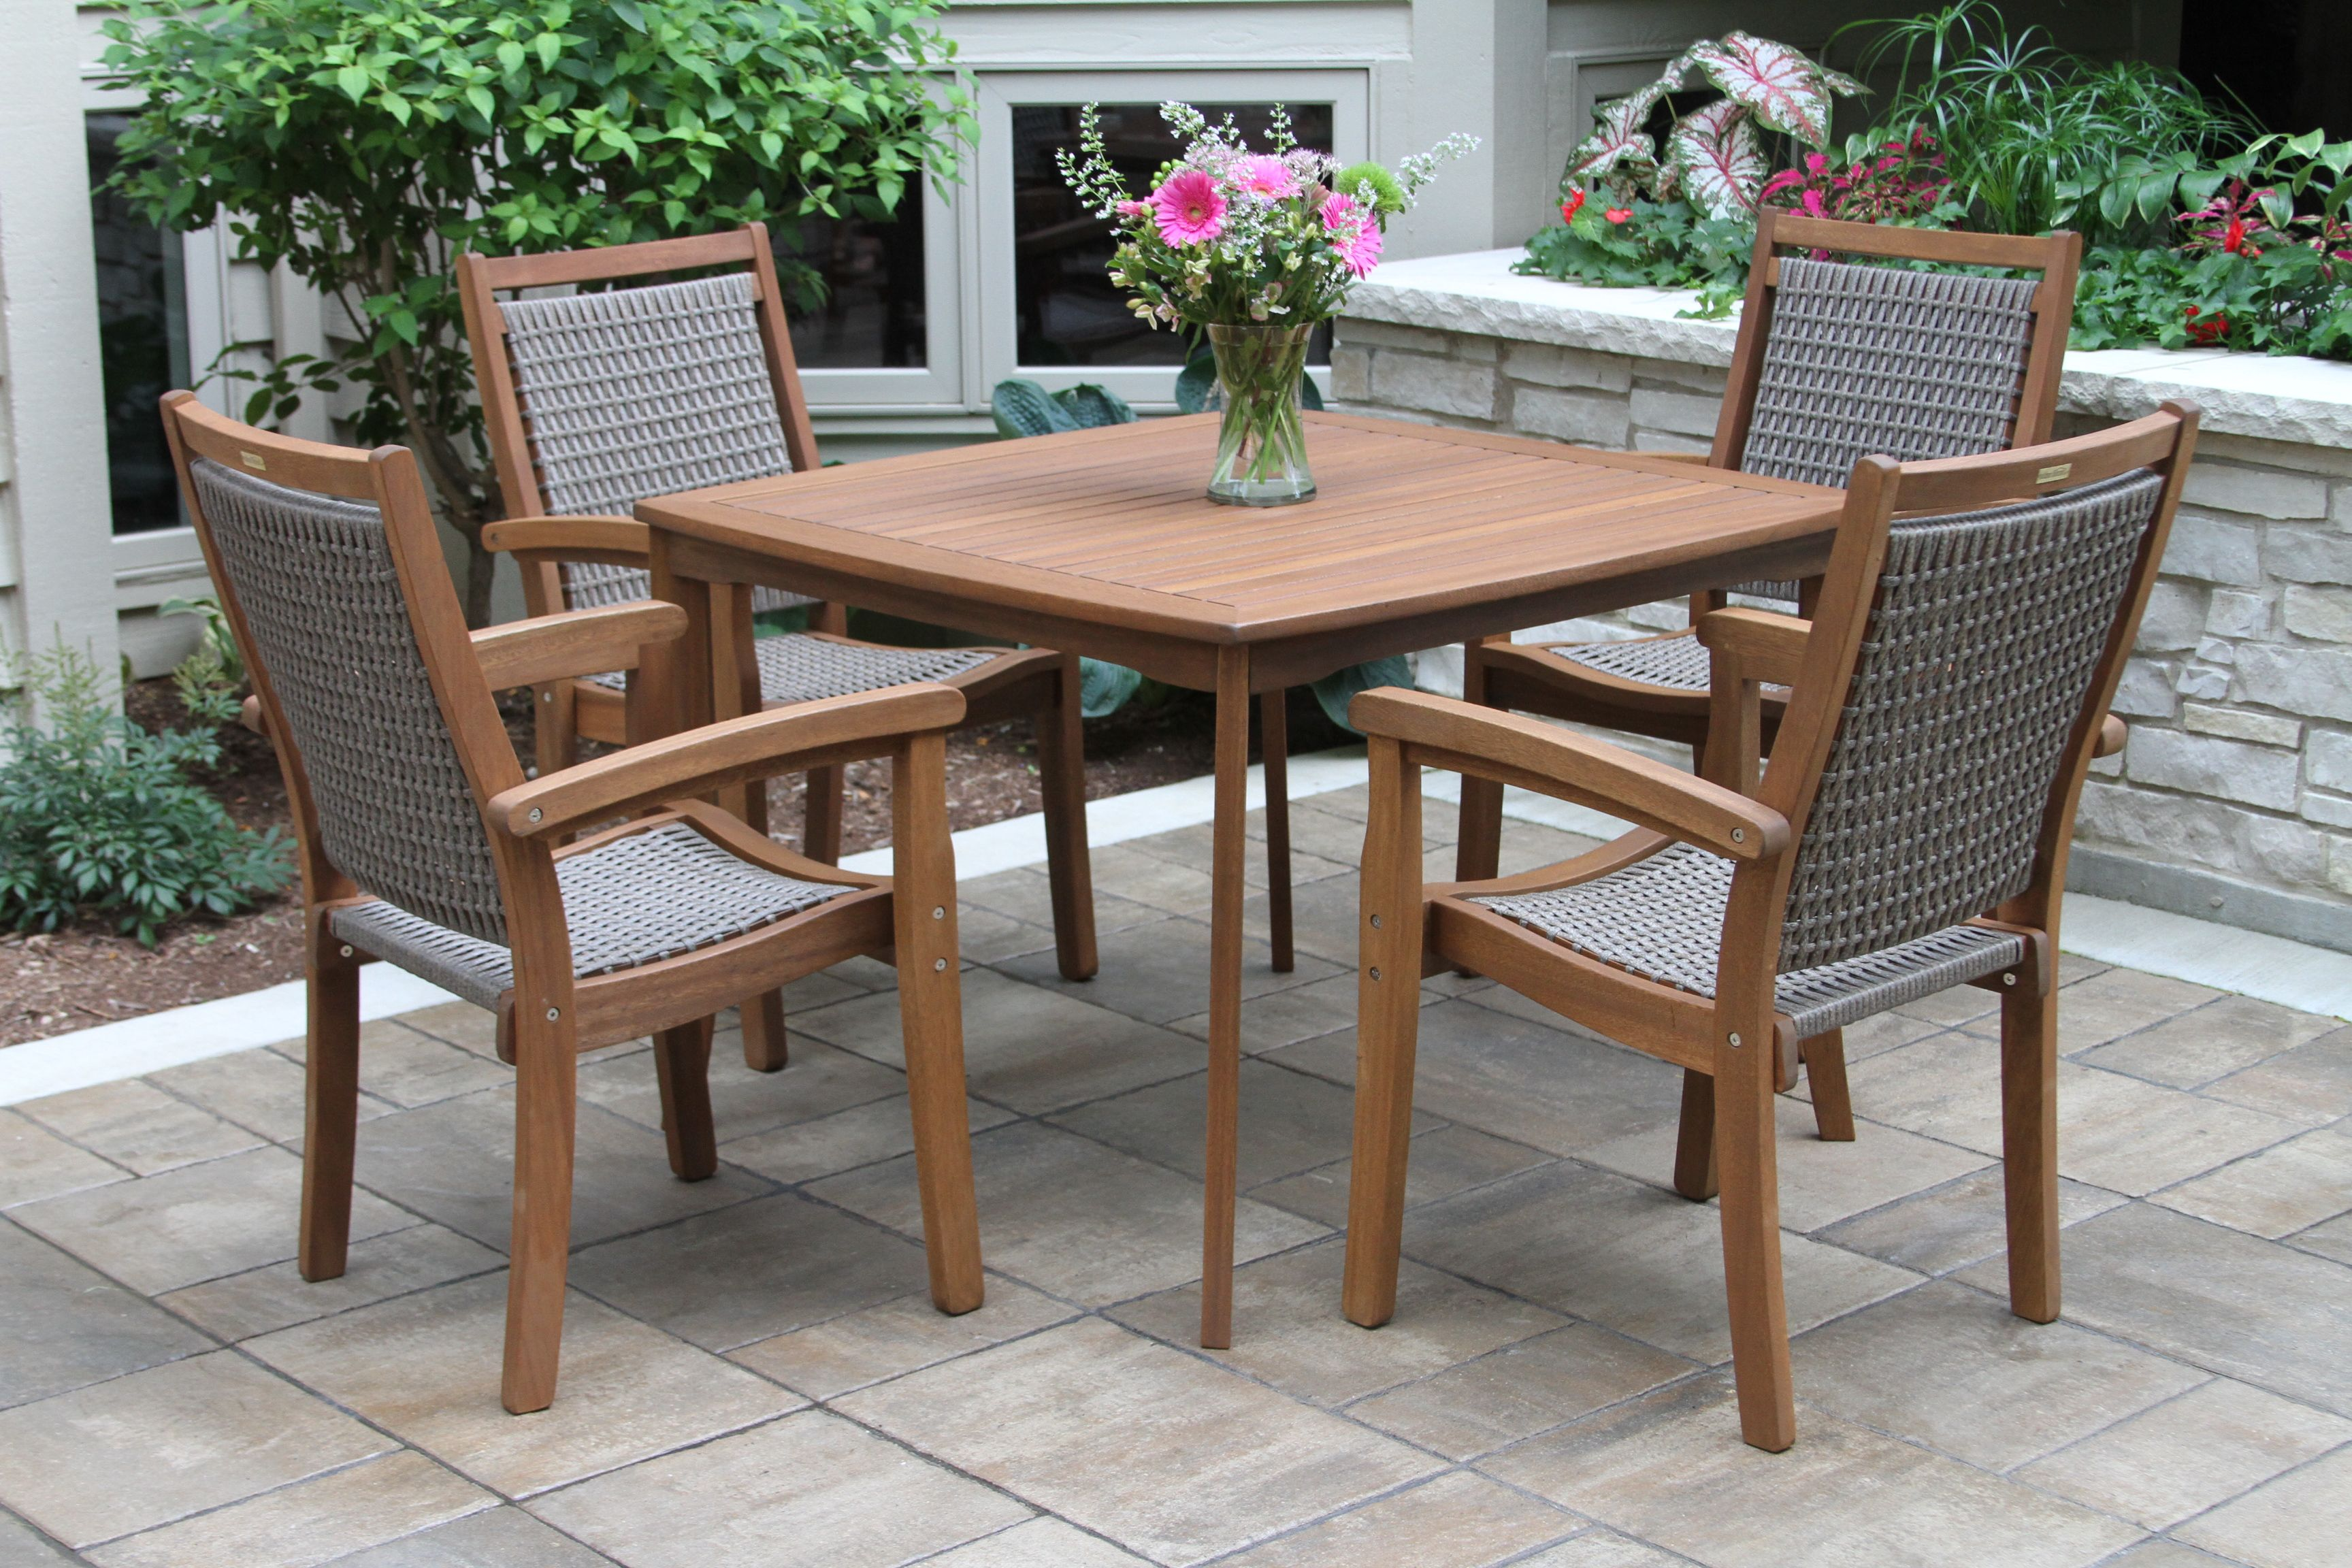 42 Square Eucalyptus Dining Table Set With Wicker Stacking Arm Chairs